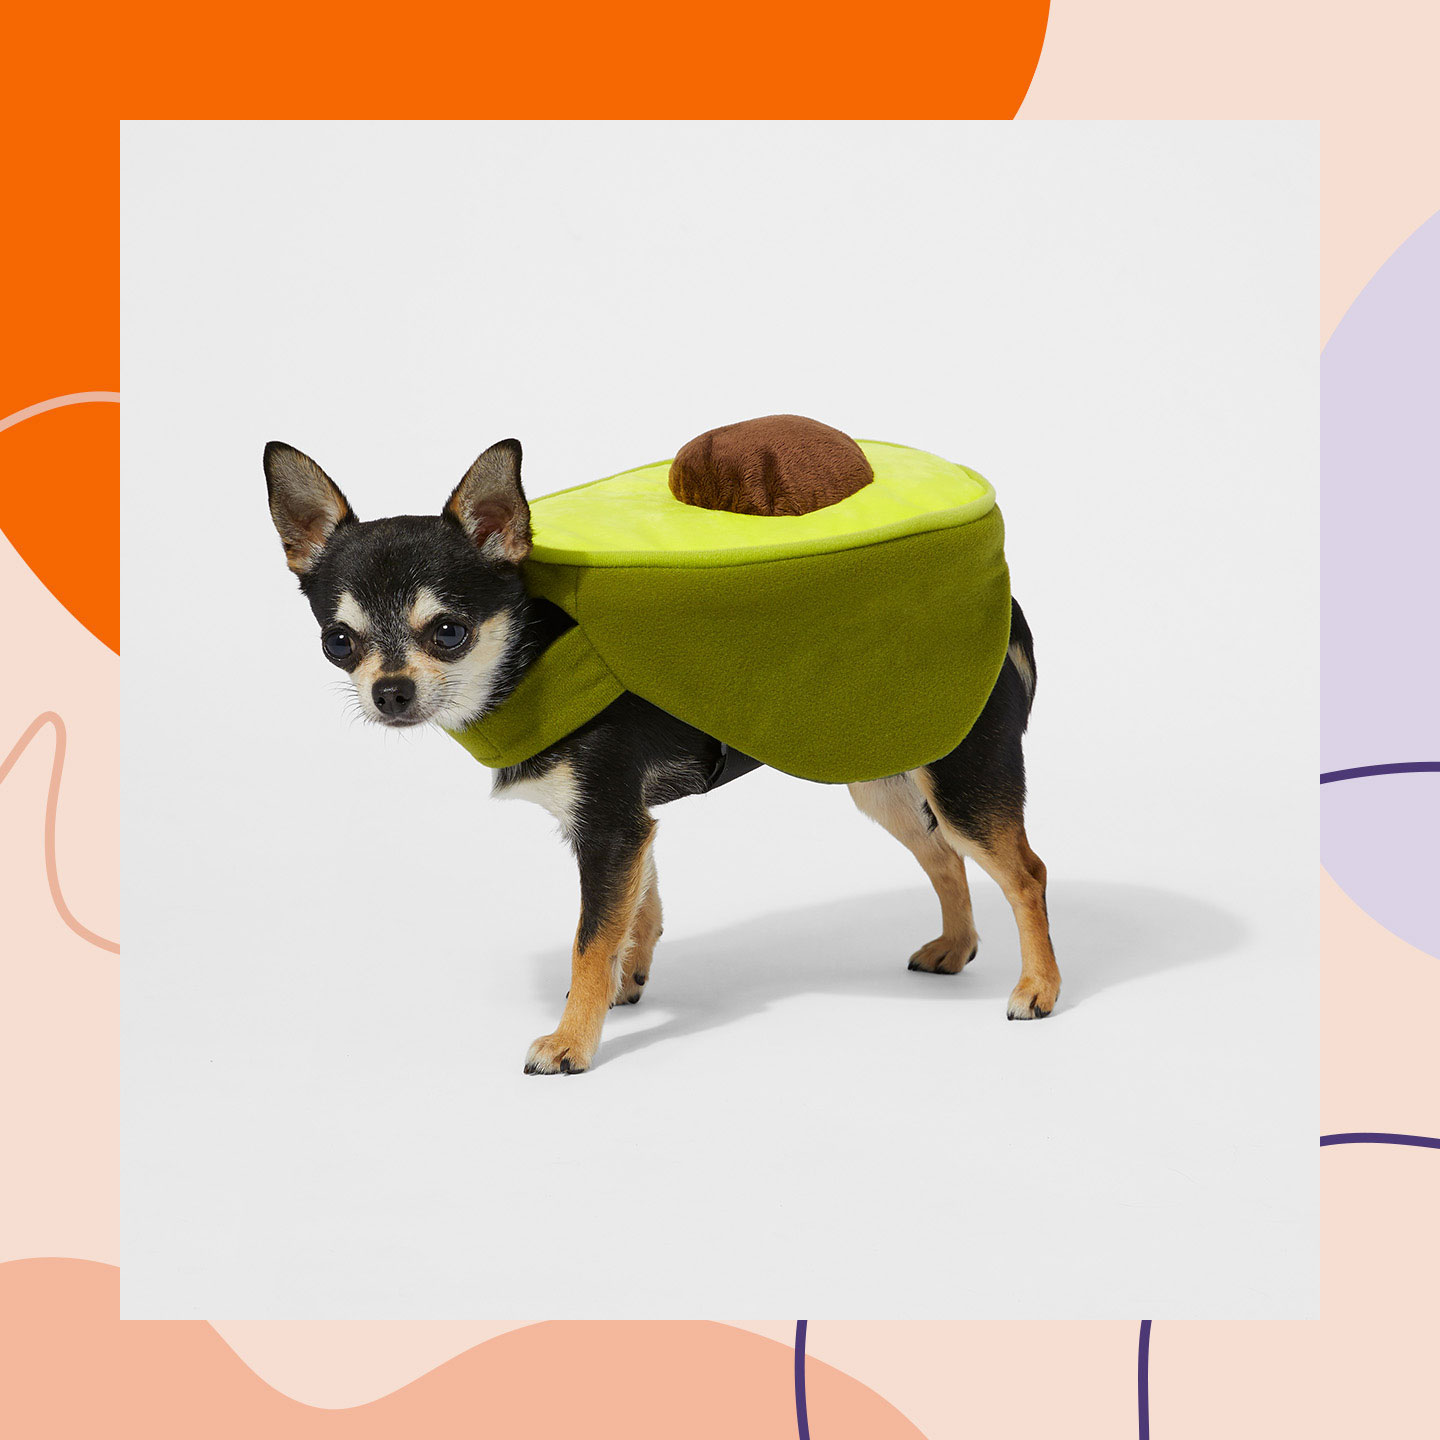 best funny dog costumes for Halloween